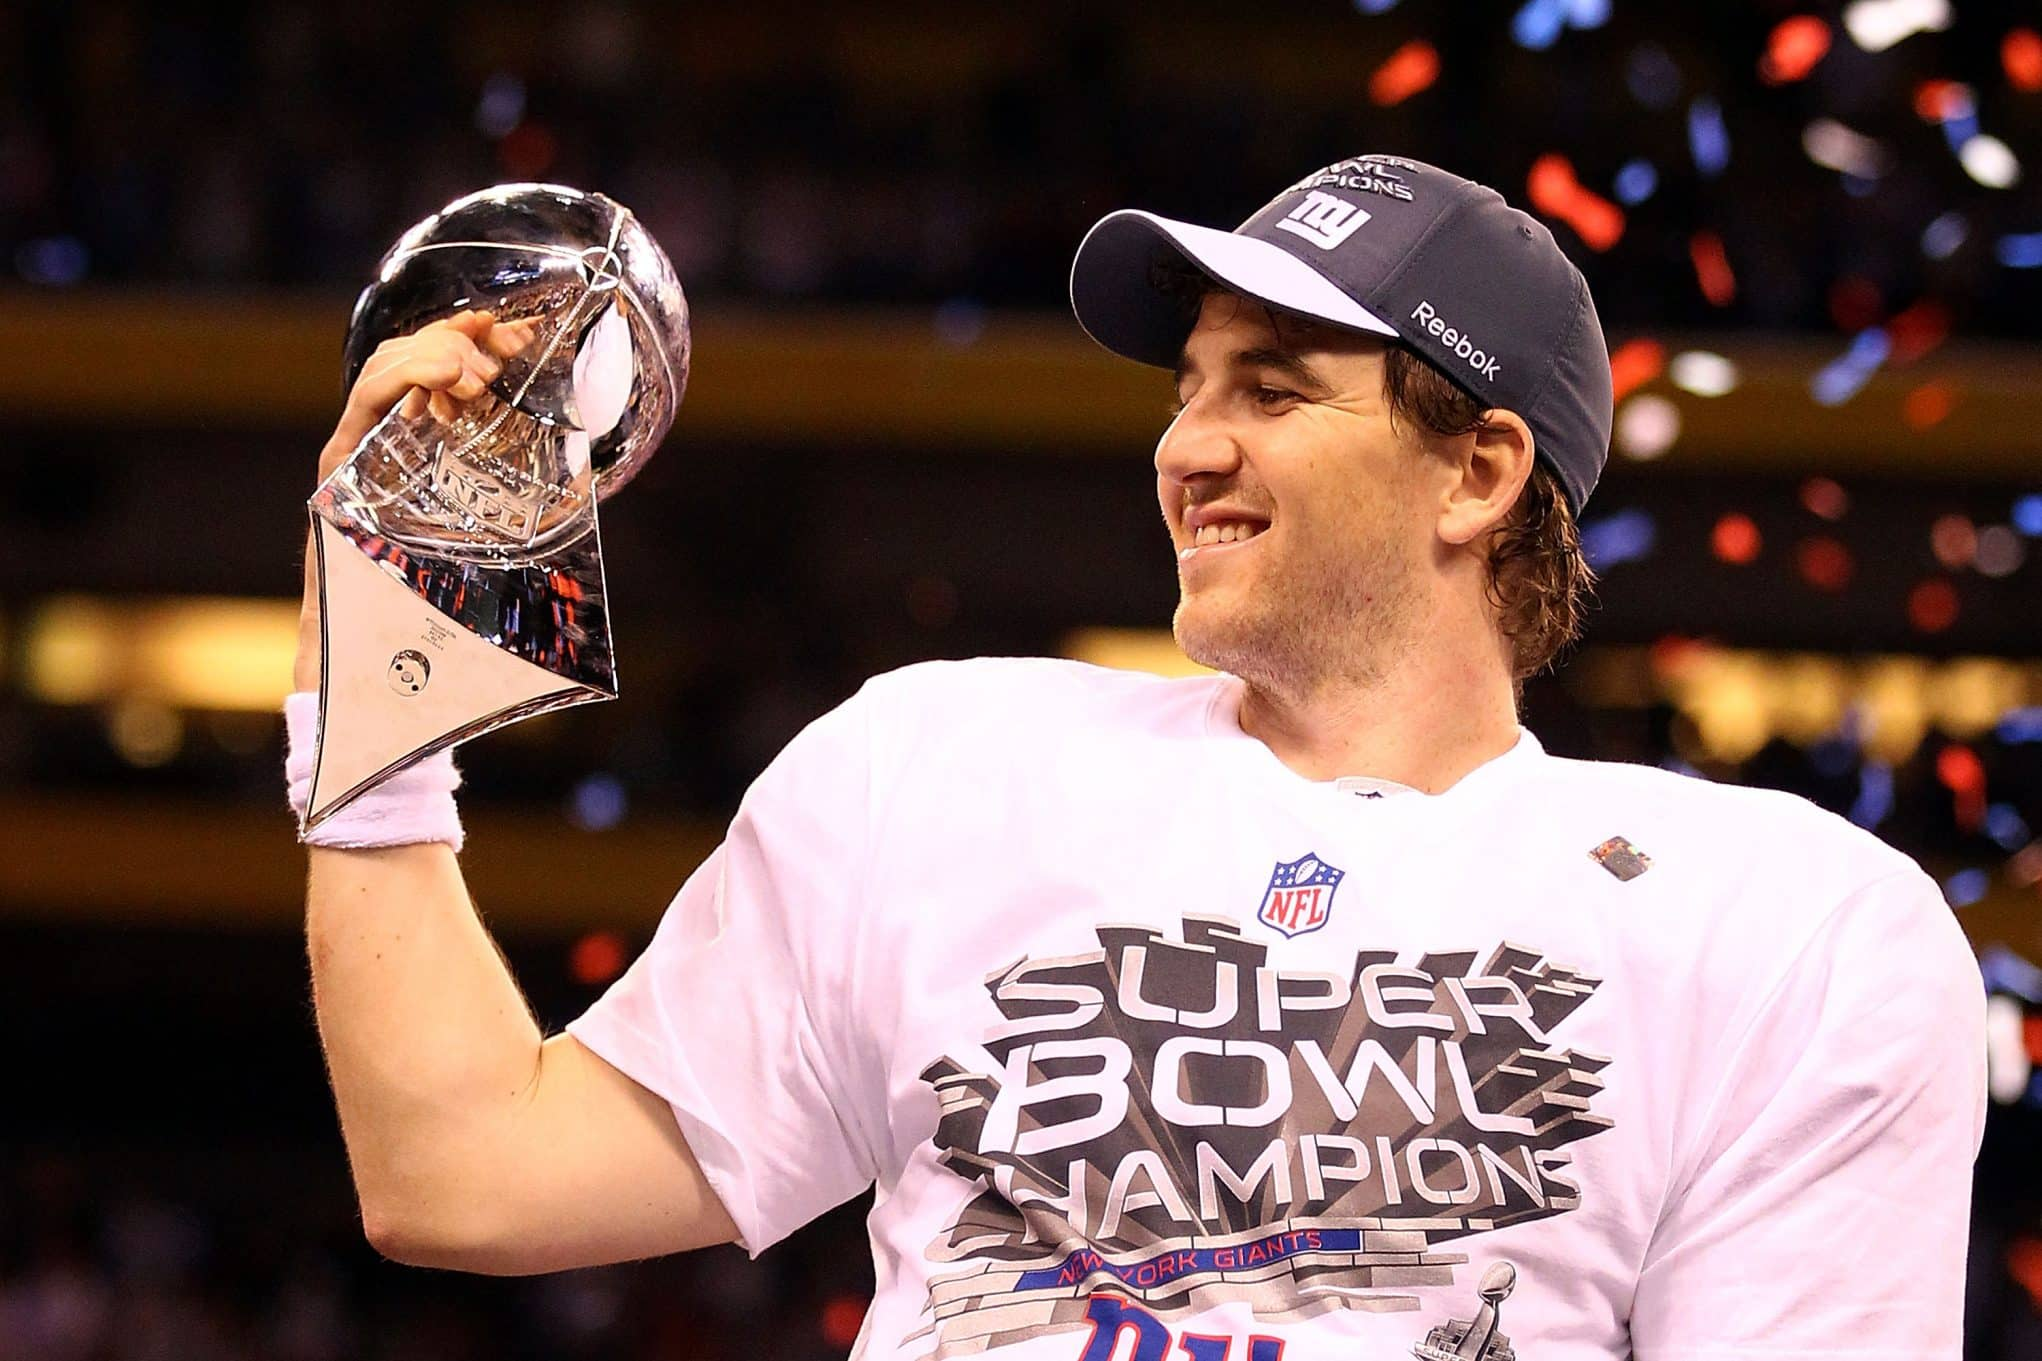 New York Giants, Eli Manning